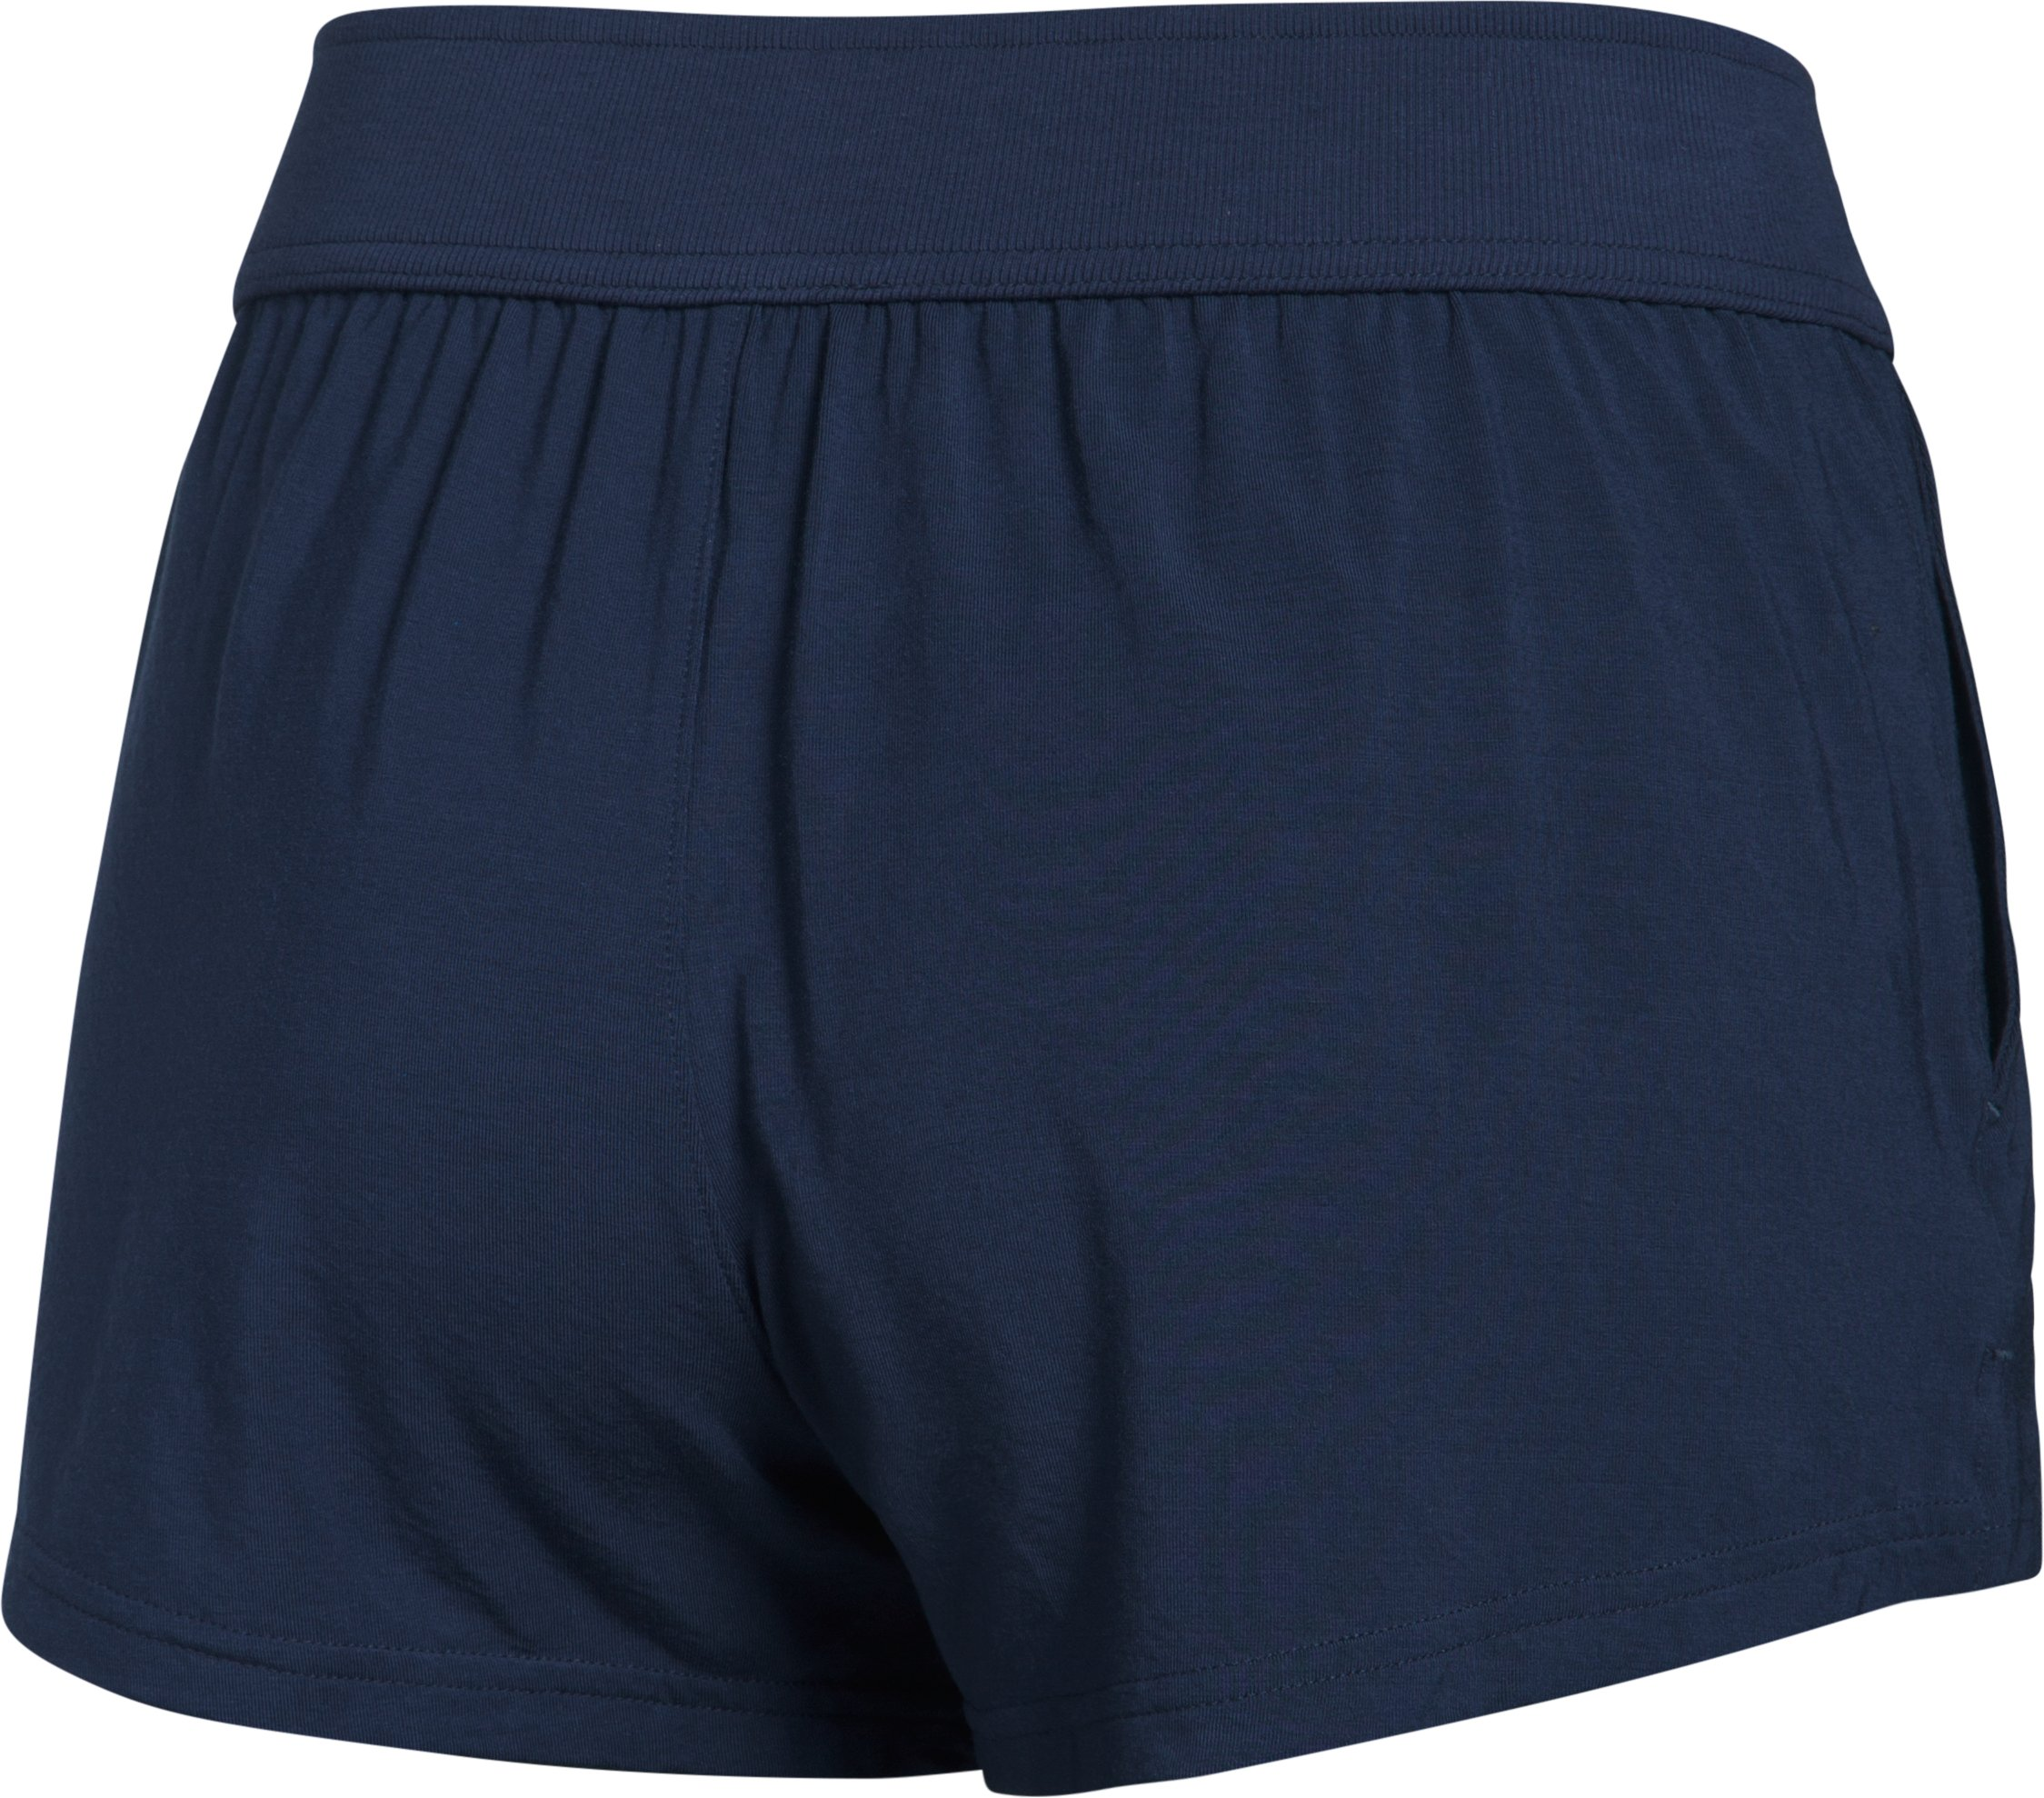 Women's Athlete Recovery Ultra Comfort Sleepwear Shorts, Midnight Navy,